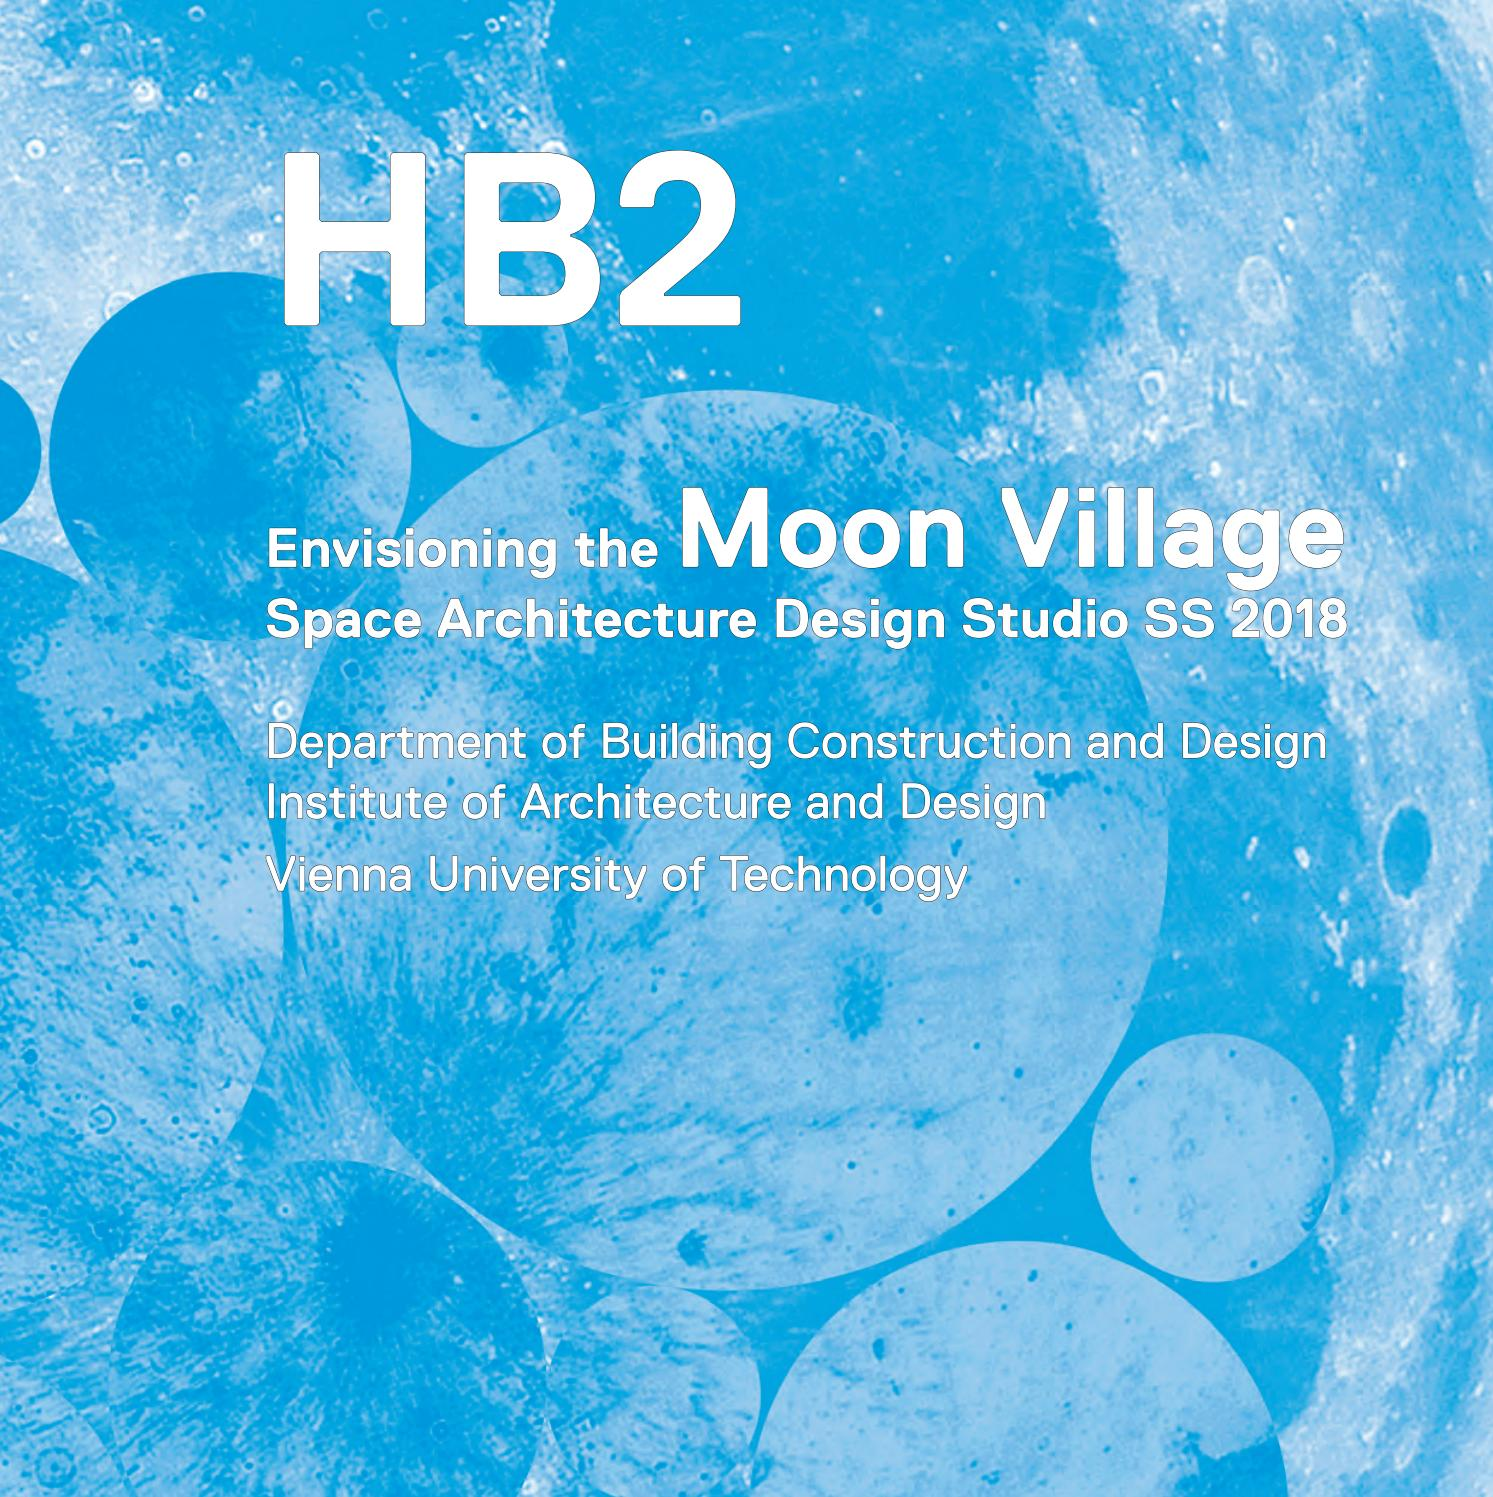 Envisioning the Moon Village - Space Architecture Design